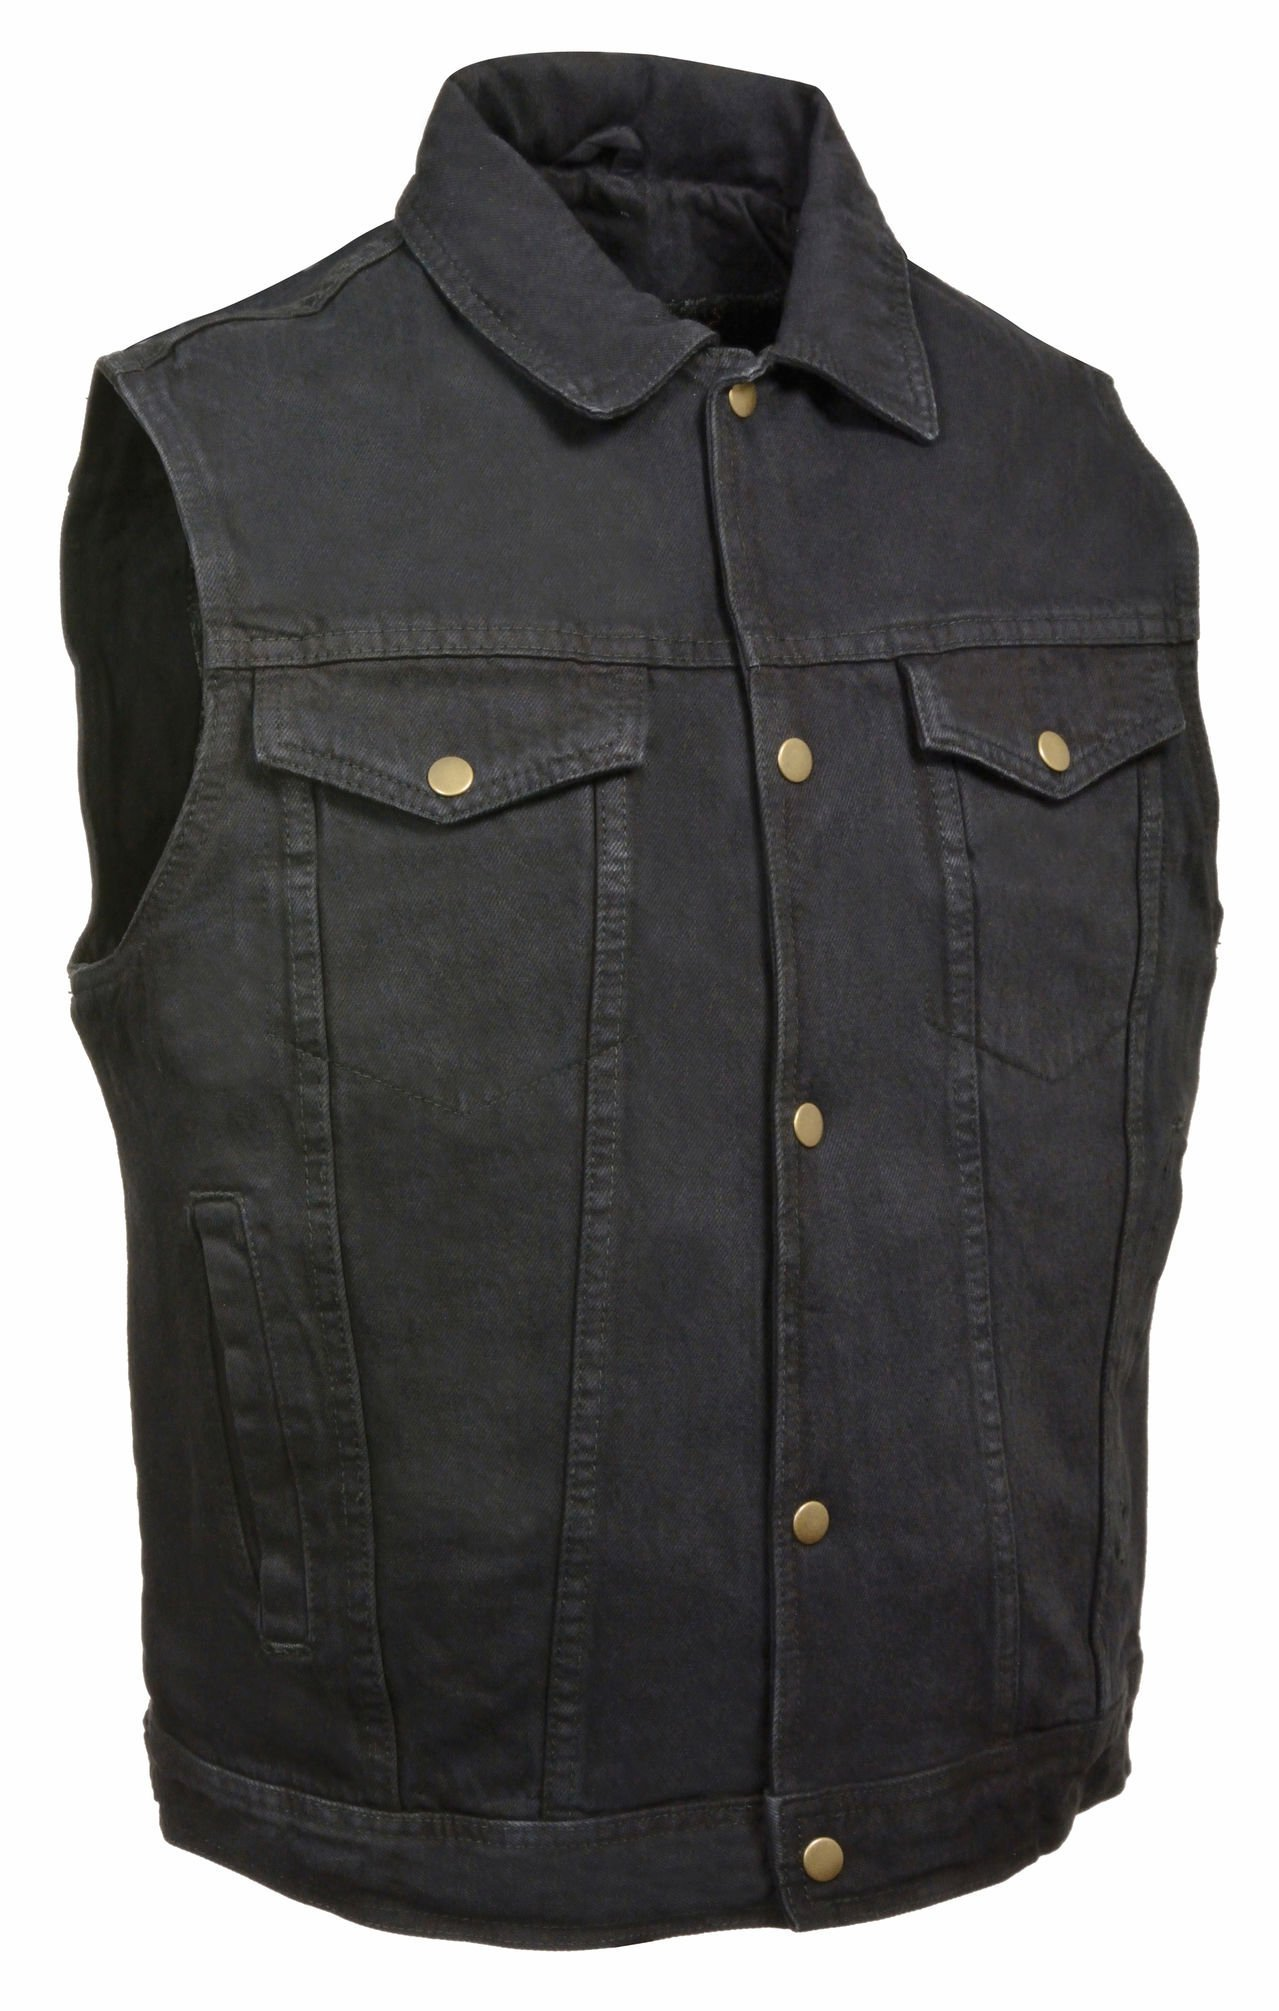 Milwaukee Leather Men's Snap Front Denim Vest w/Shirt Collar (Black, 3X) by Milwaukee Leather